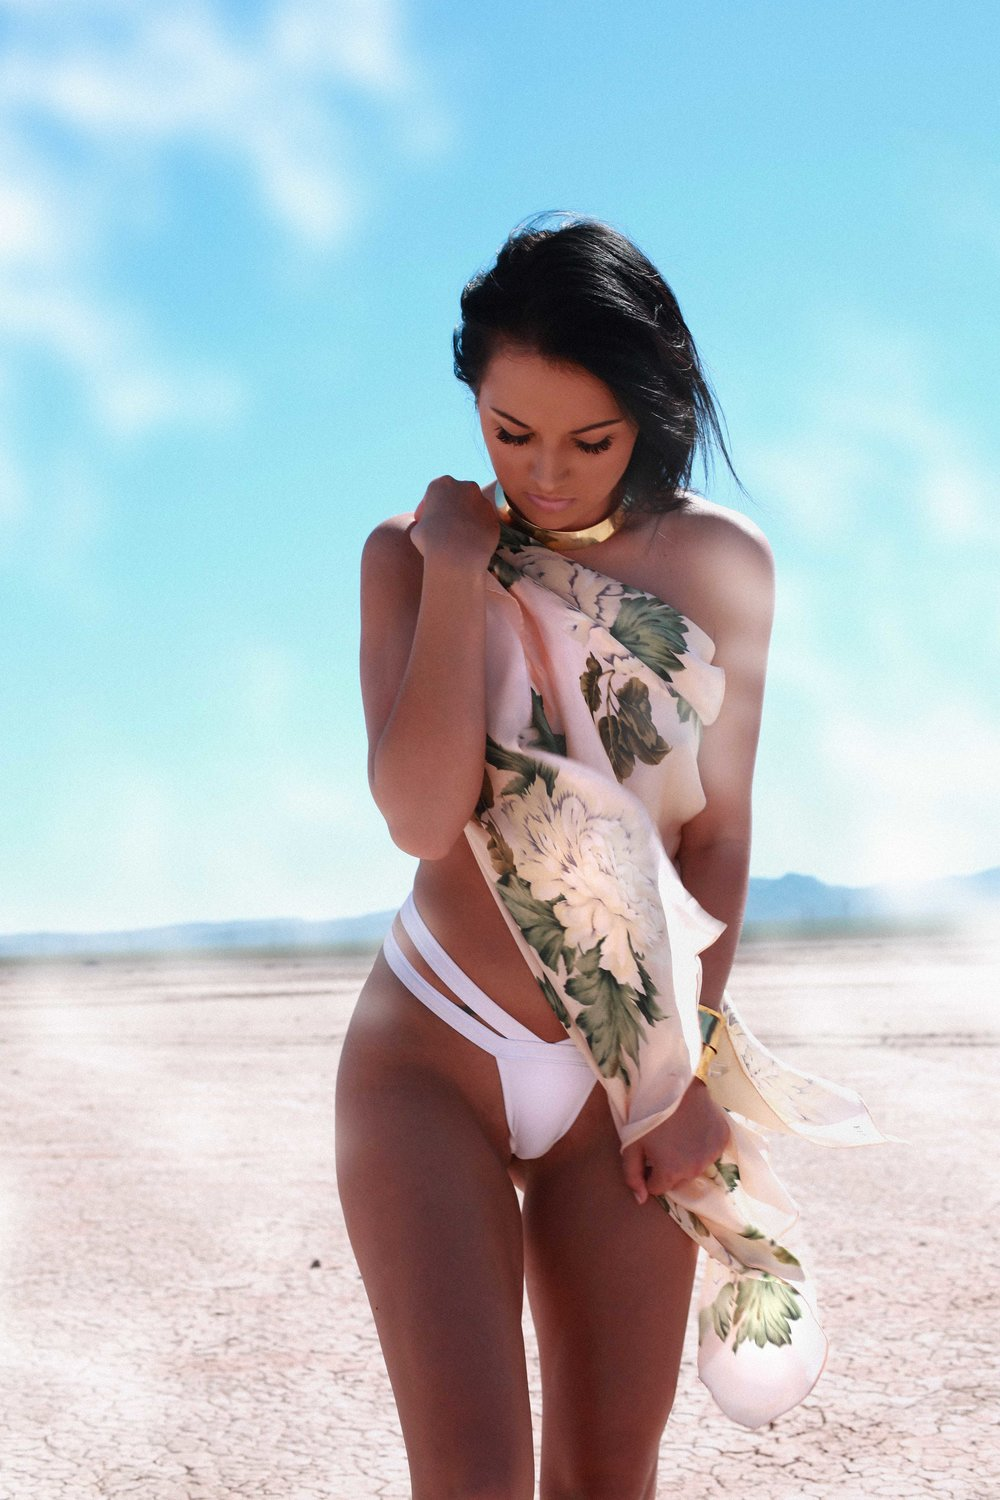 CRACKED DESERT - Dry Lake Photo Shoot Fashion Story by Alyssa Risley - IG @alyssarisley